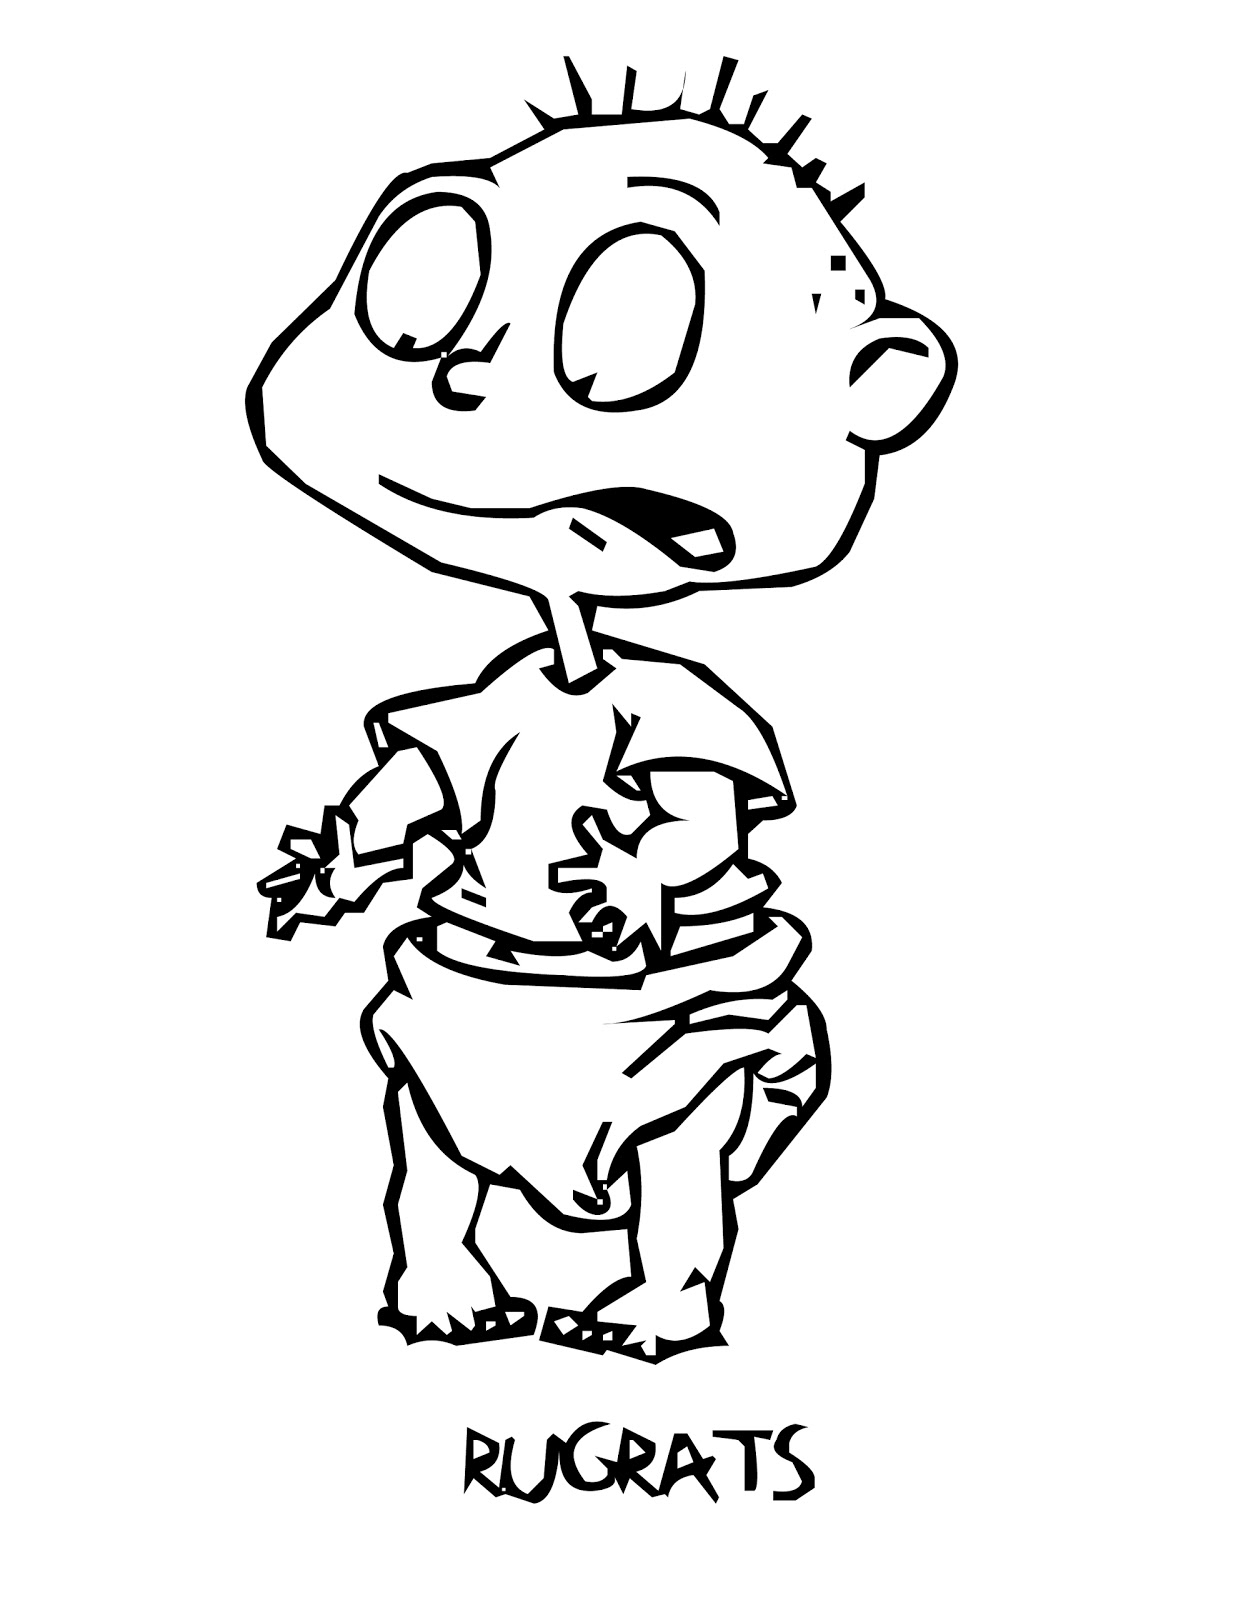 rugrats coloring pages printable rugrats coloring pages for kids cool2bkids pages coloring rugrats